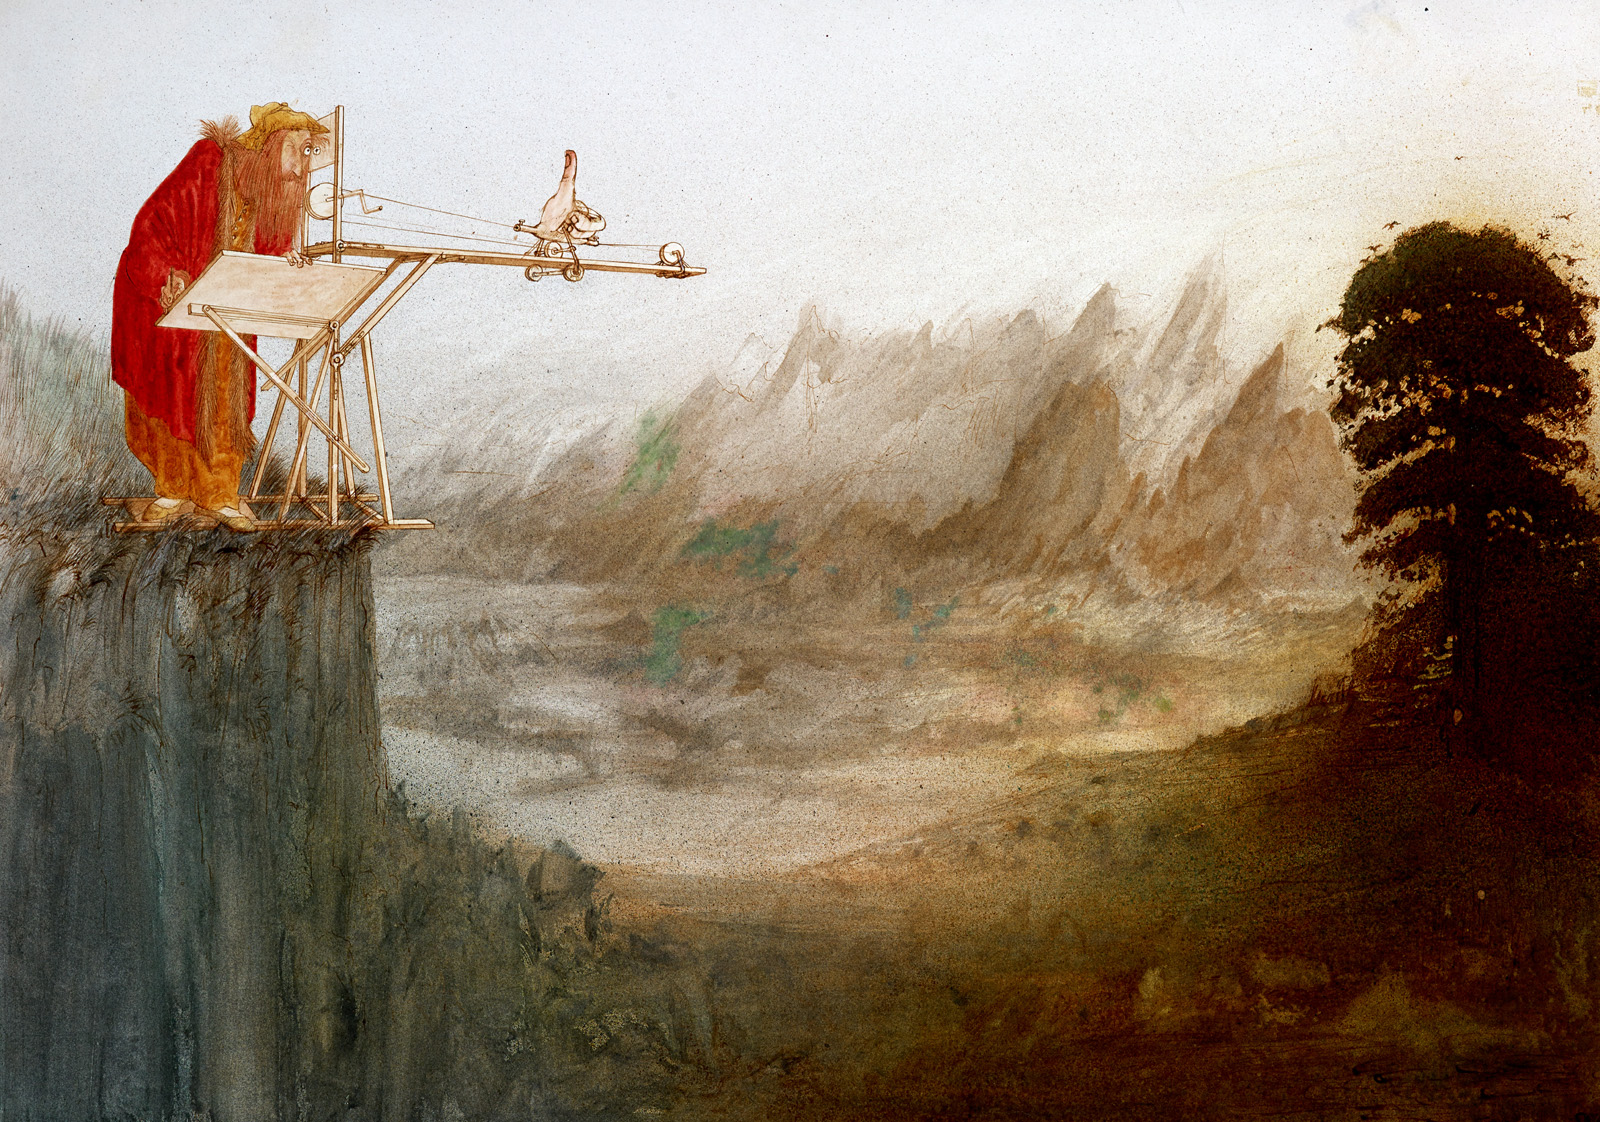 An imagined incident where Leonardo da Vinci has created a device to help him paint a landscape